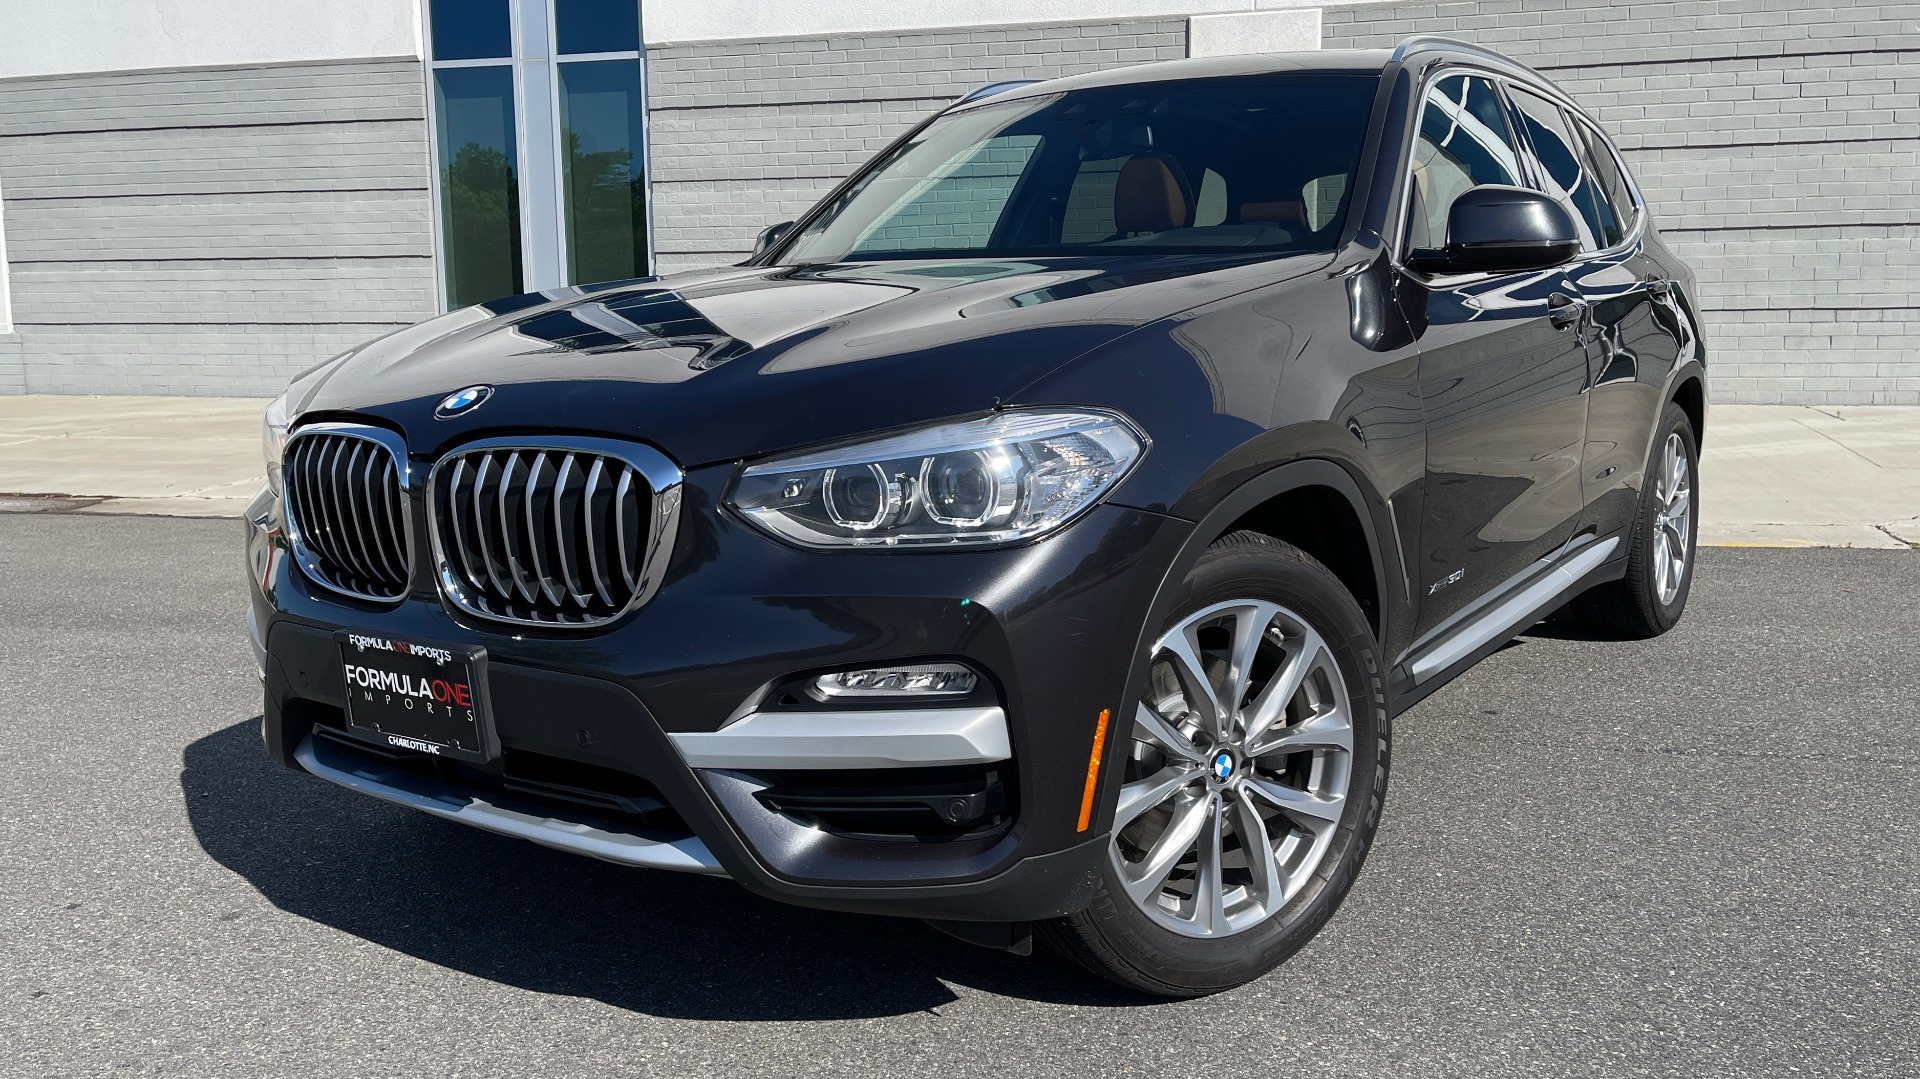 Used 2018 BMW X3 XDRIVE30I PREMIUM / NAV / DRVR ASST PLUS / CONV PKG / SUNROOF / REARVIEW for sale $33,795 at Formula Imports in Charlotte NC 28227 1